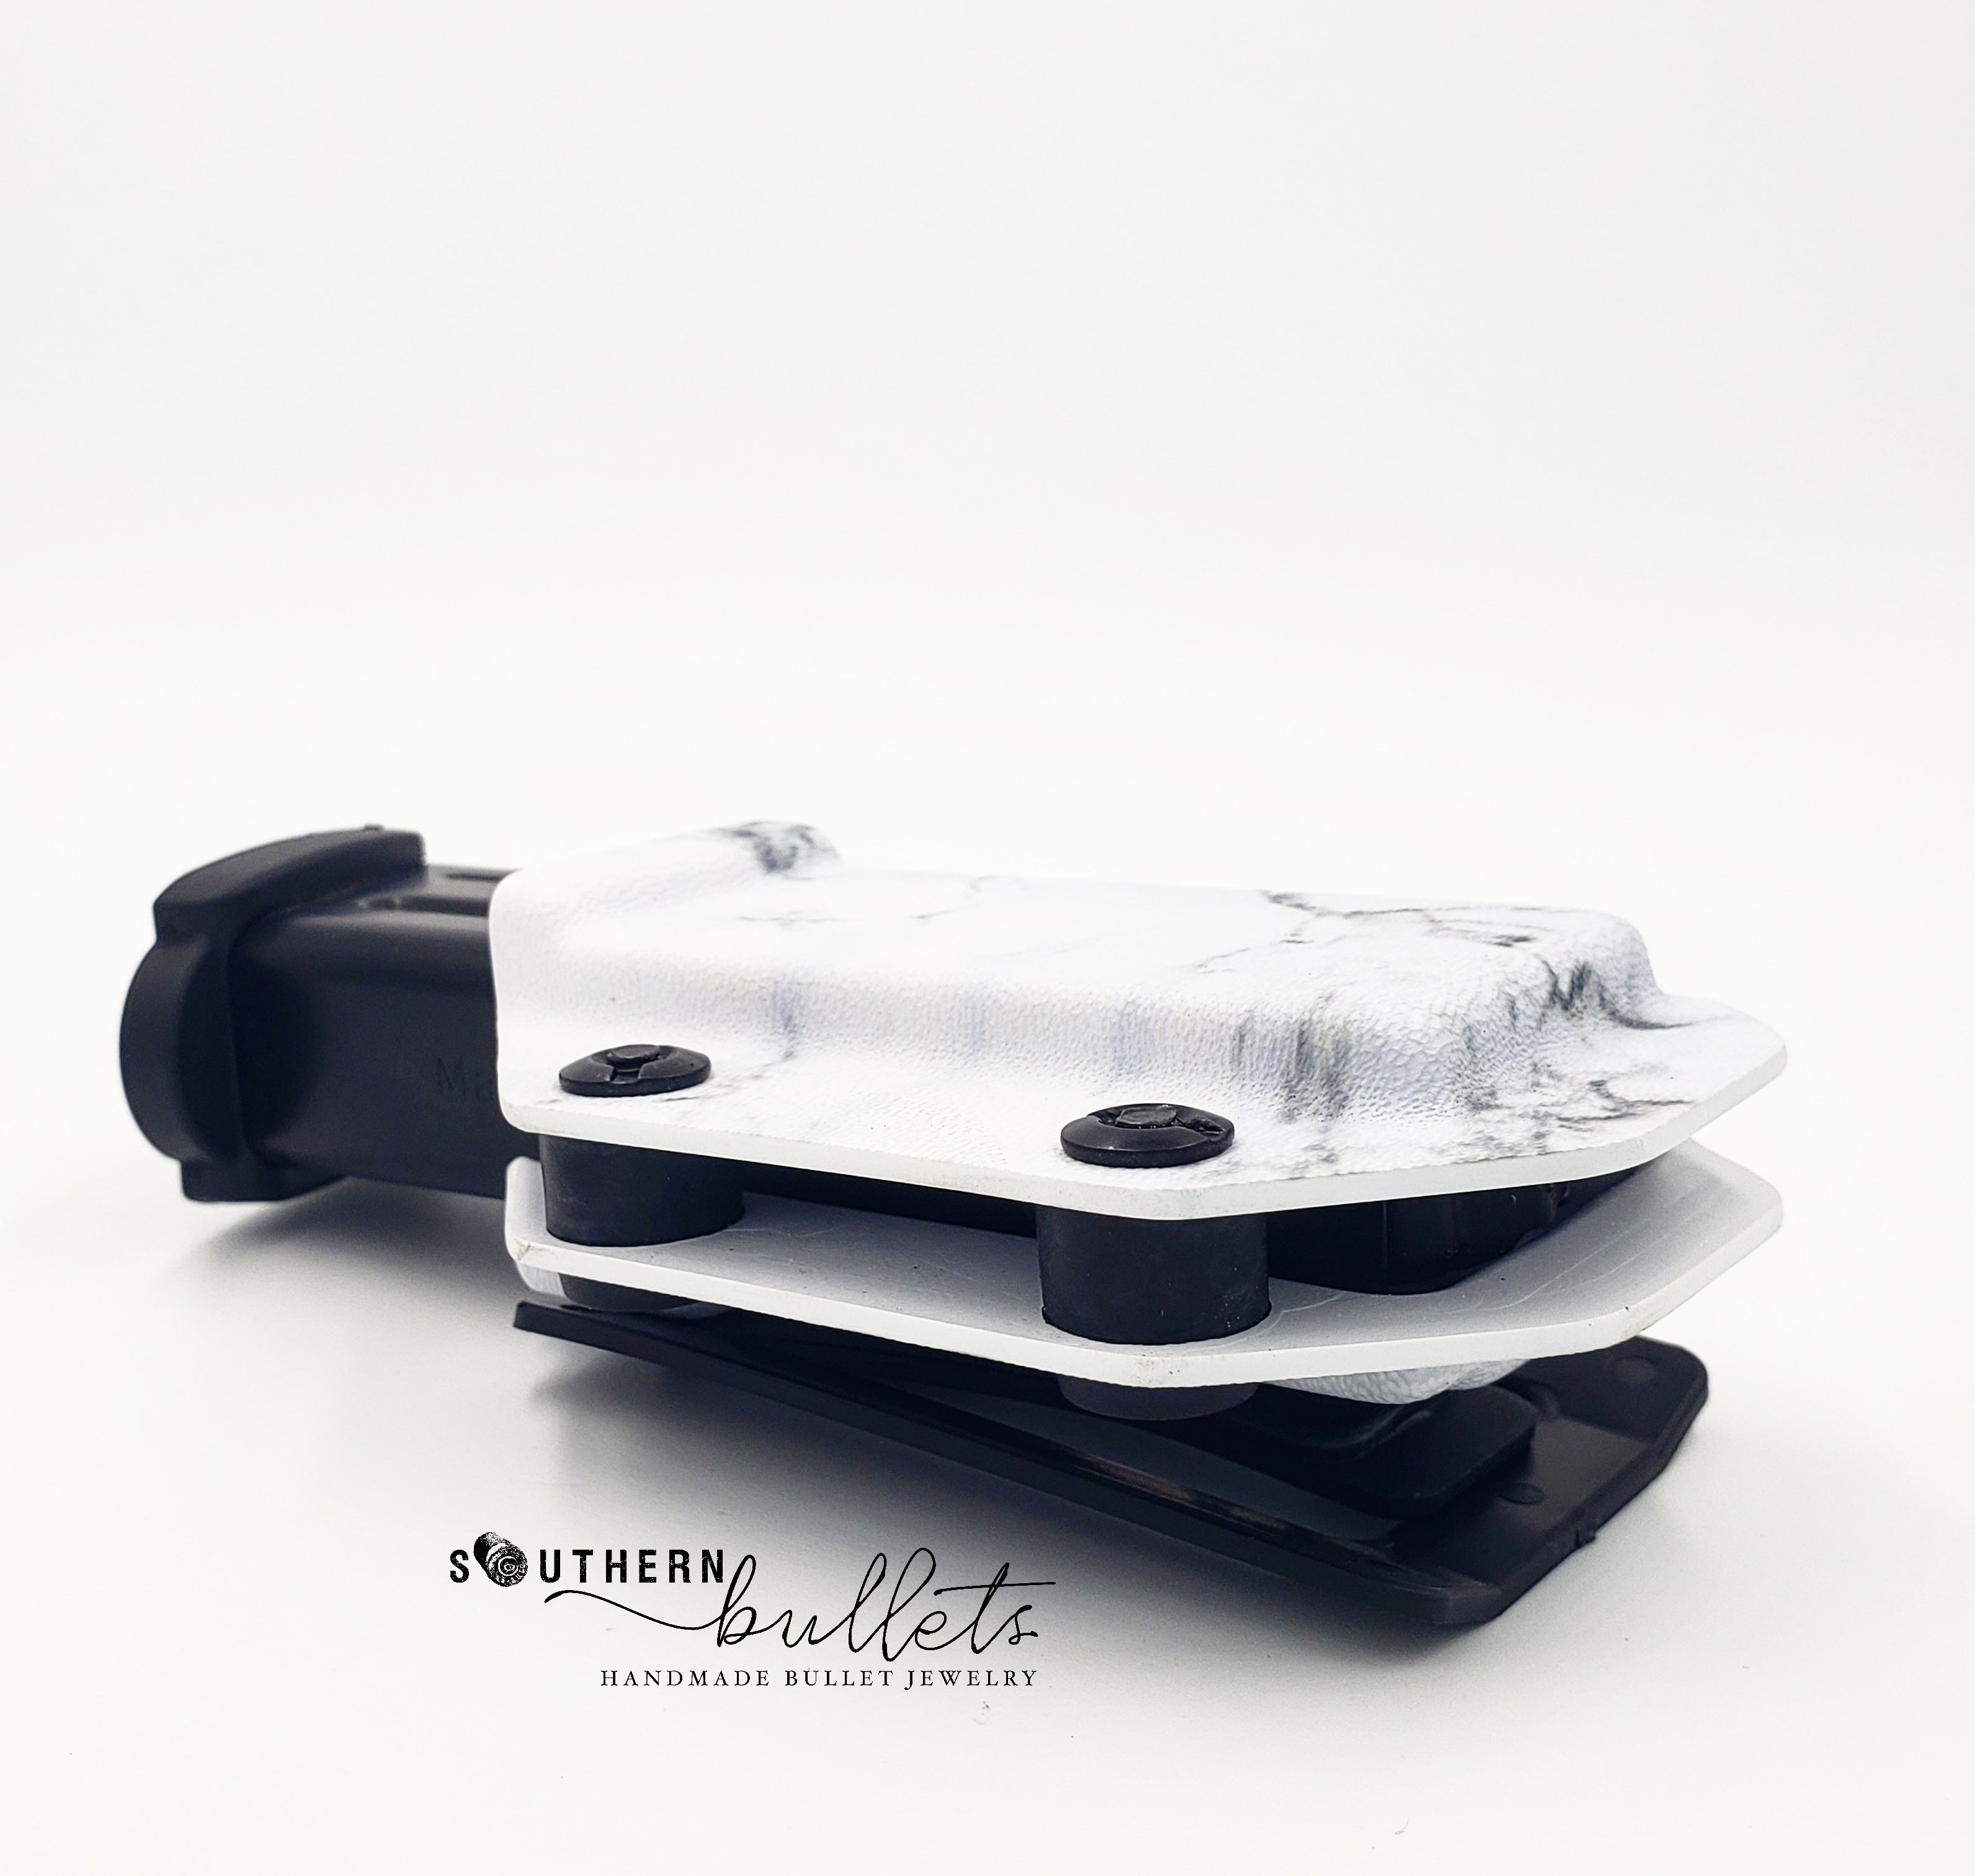 White Marble Fabriclip Magazine Carrier